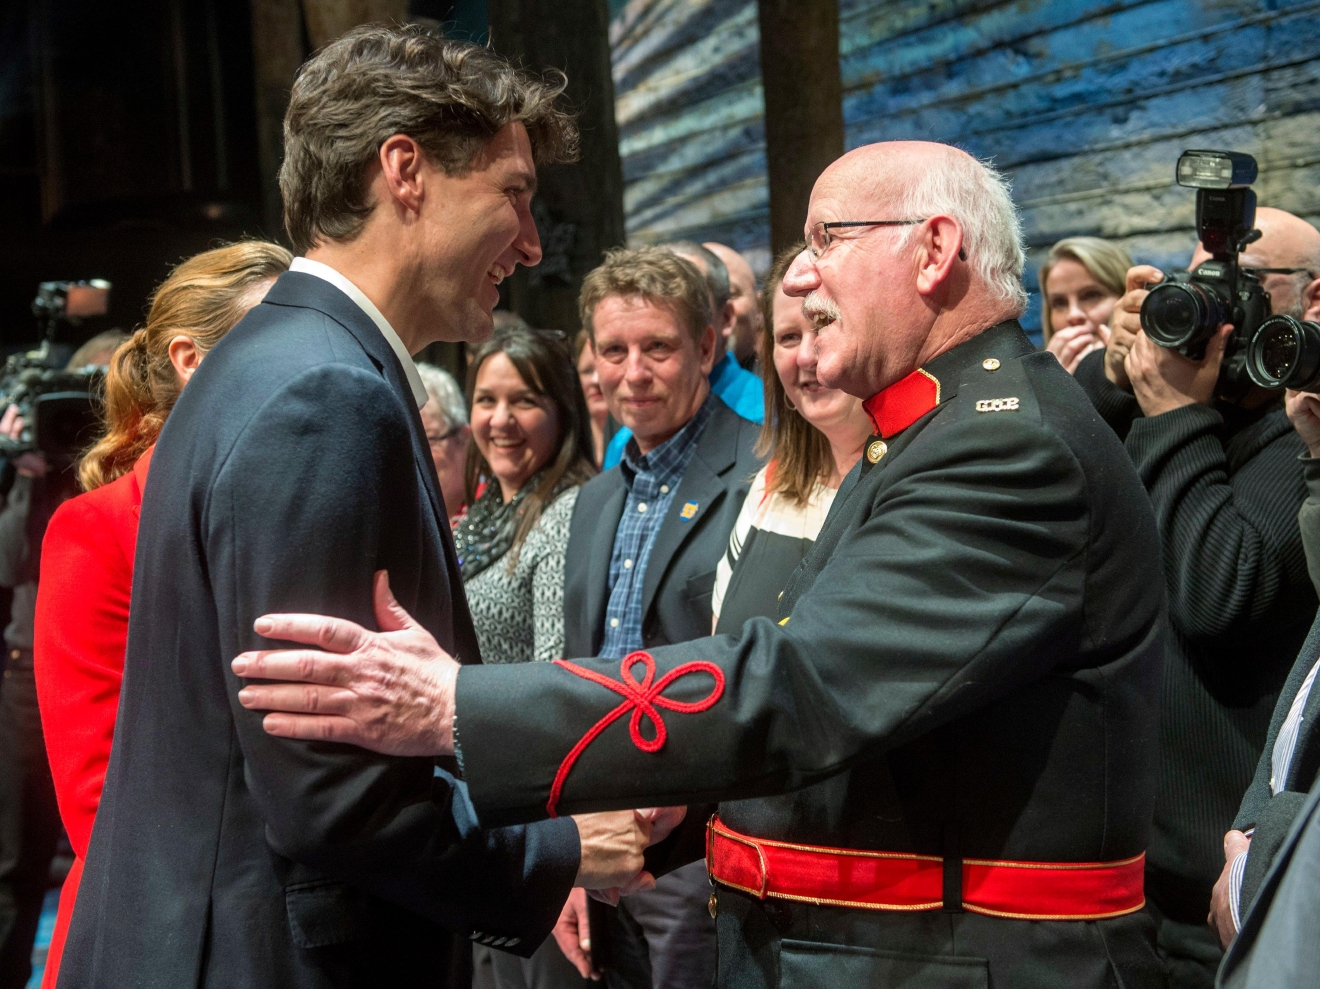 "Canadian Prime Minister Justin Trudeau, left, and his wife Sophie Gregoire, behind, greet some of the citizens from Gander, Newfoundland, after the Broadway musical ""Come From Away"" in New York on Wednesday, March 15, 2017. Trudeau, along with first daughter Ivanka Trump, have welcomed the new musical that celebrates Canadian compassion following 9/11. The musical is set in the small Newfoundland town of Gander, which opened its arms and homes to some 7,000 airline passengers diverted there when the U.S. government shut down its airspace. (Ryan Remiorz/The Canadian Press via AP)"